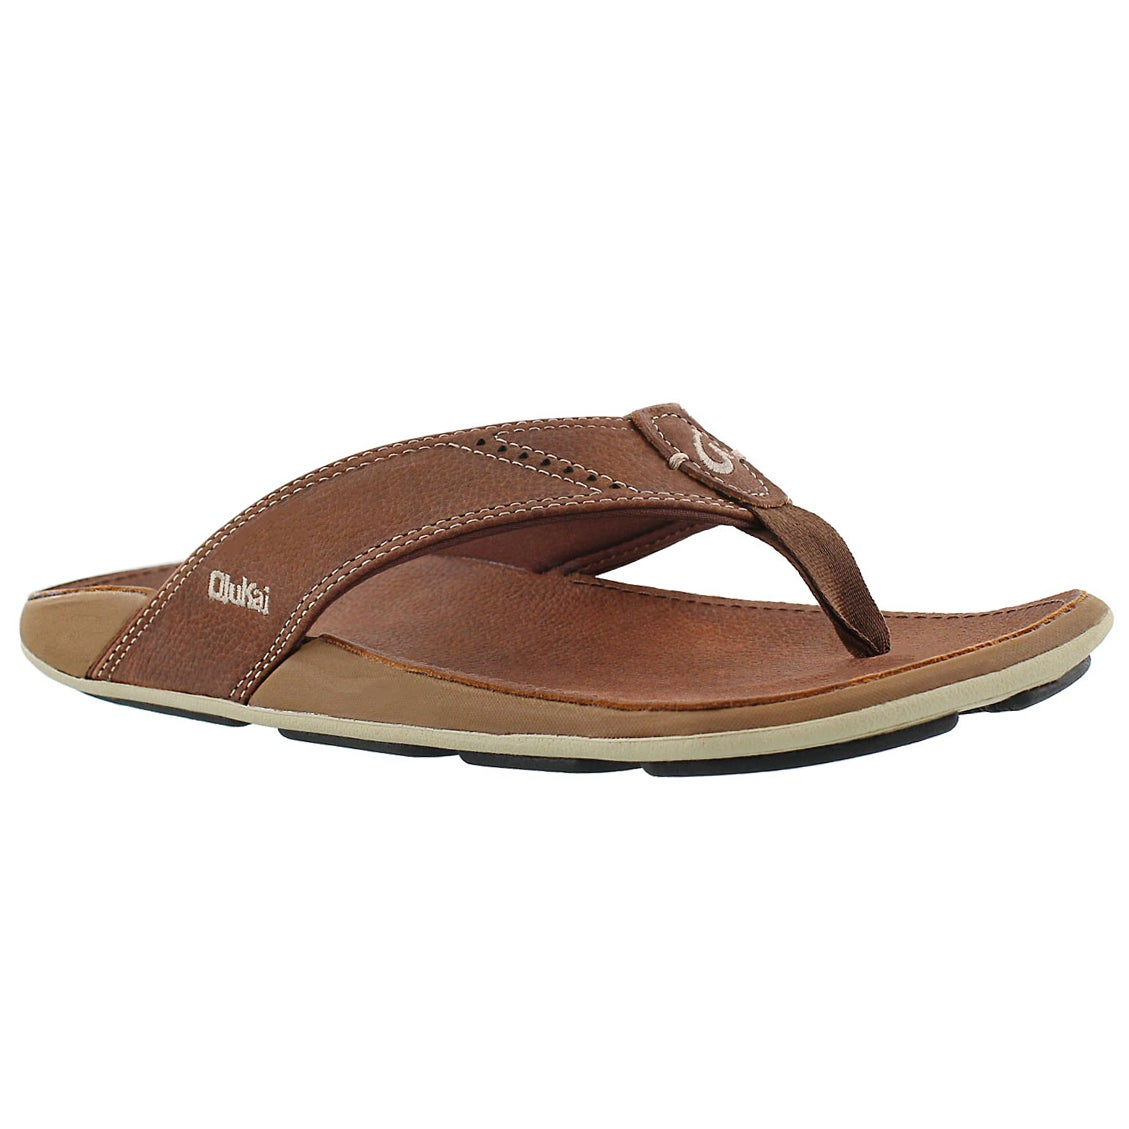 Men's NUI rum thong sandals